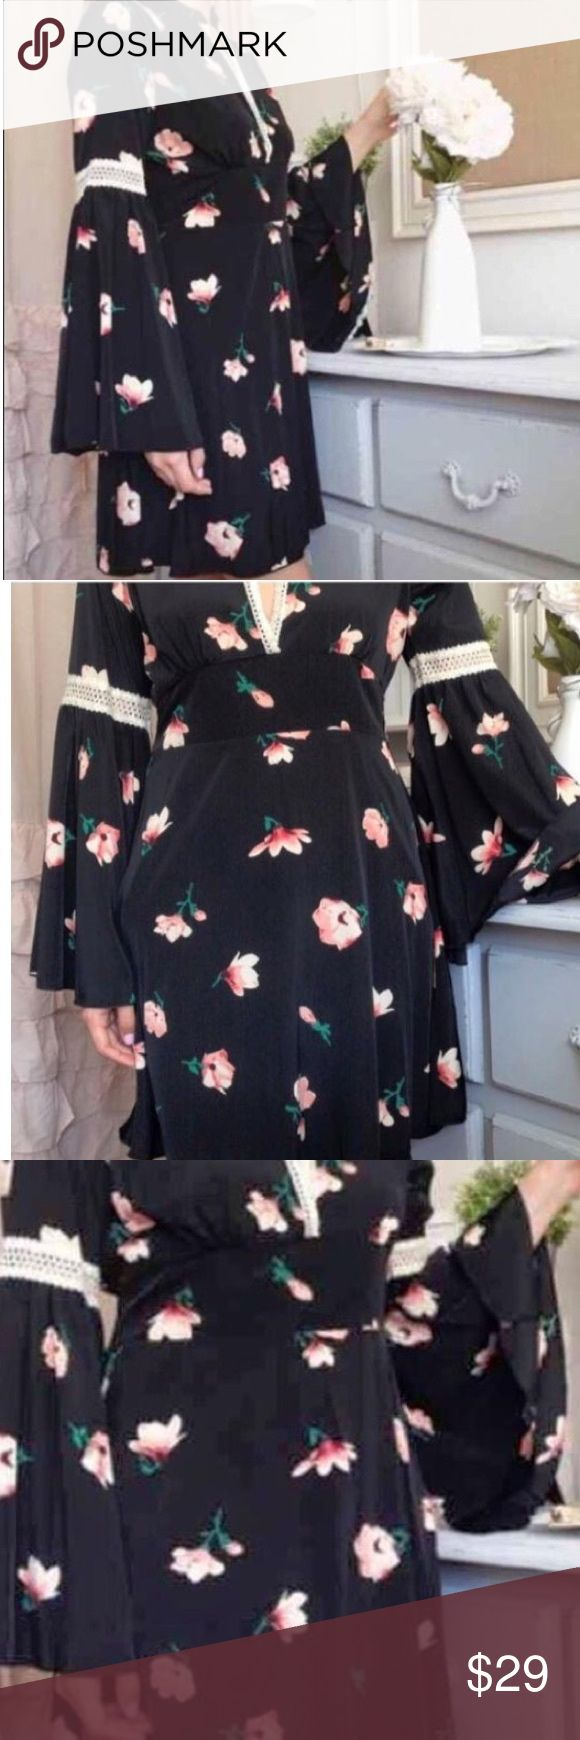 Brand New Gorgeous Bell Sleeve Dress Size Large This dress is stunning !! Black floral print with crochet detail and bell sleeves • Size Large • Fits Size 10 to 12 Comfortably Poly rayon blend🌸 Free Shipping on all orders of $40 or more including bundles !! Be sure to comment so I can set up a separate listing just for you to reflect the shipping discount 😊🌸😊 Dresses